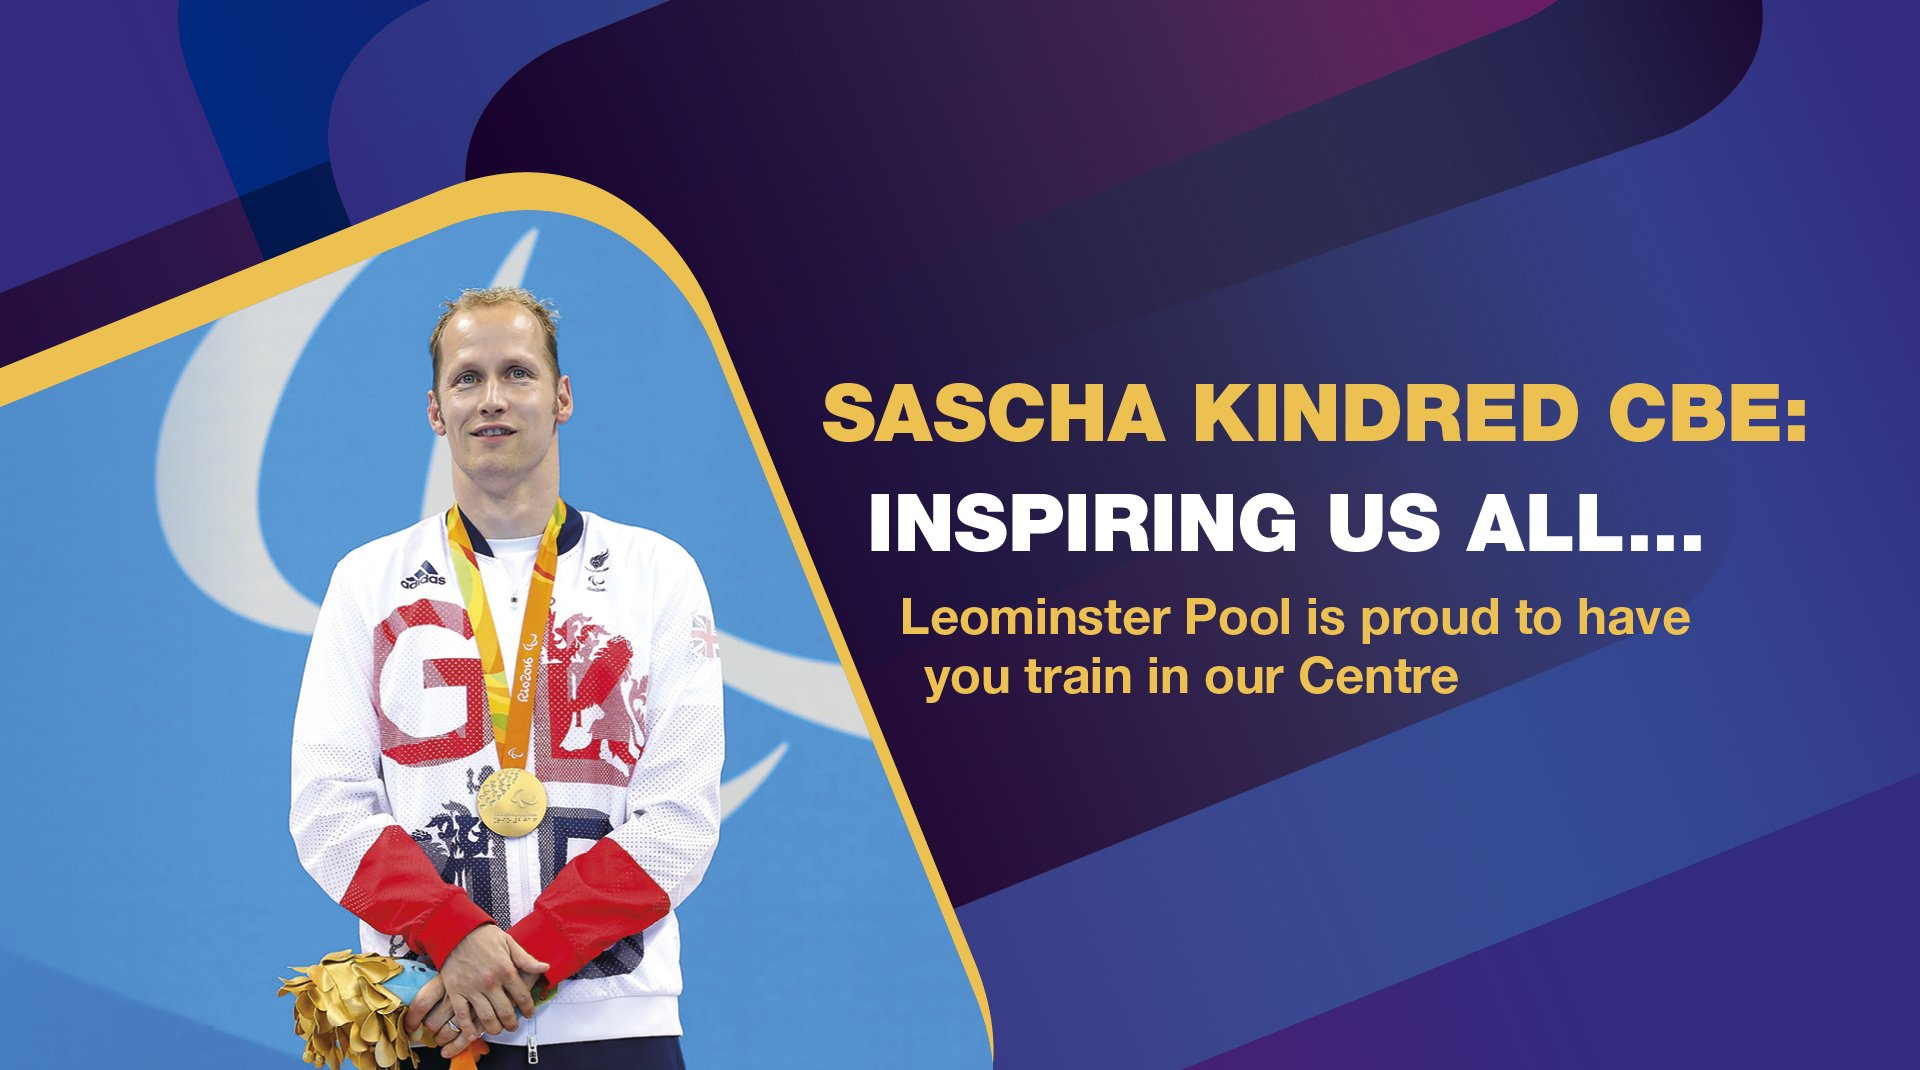 Sascha Kindred Web Banner 1